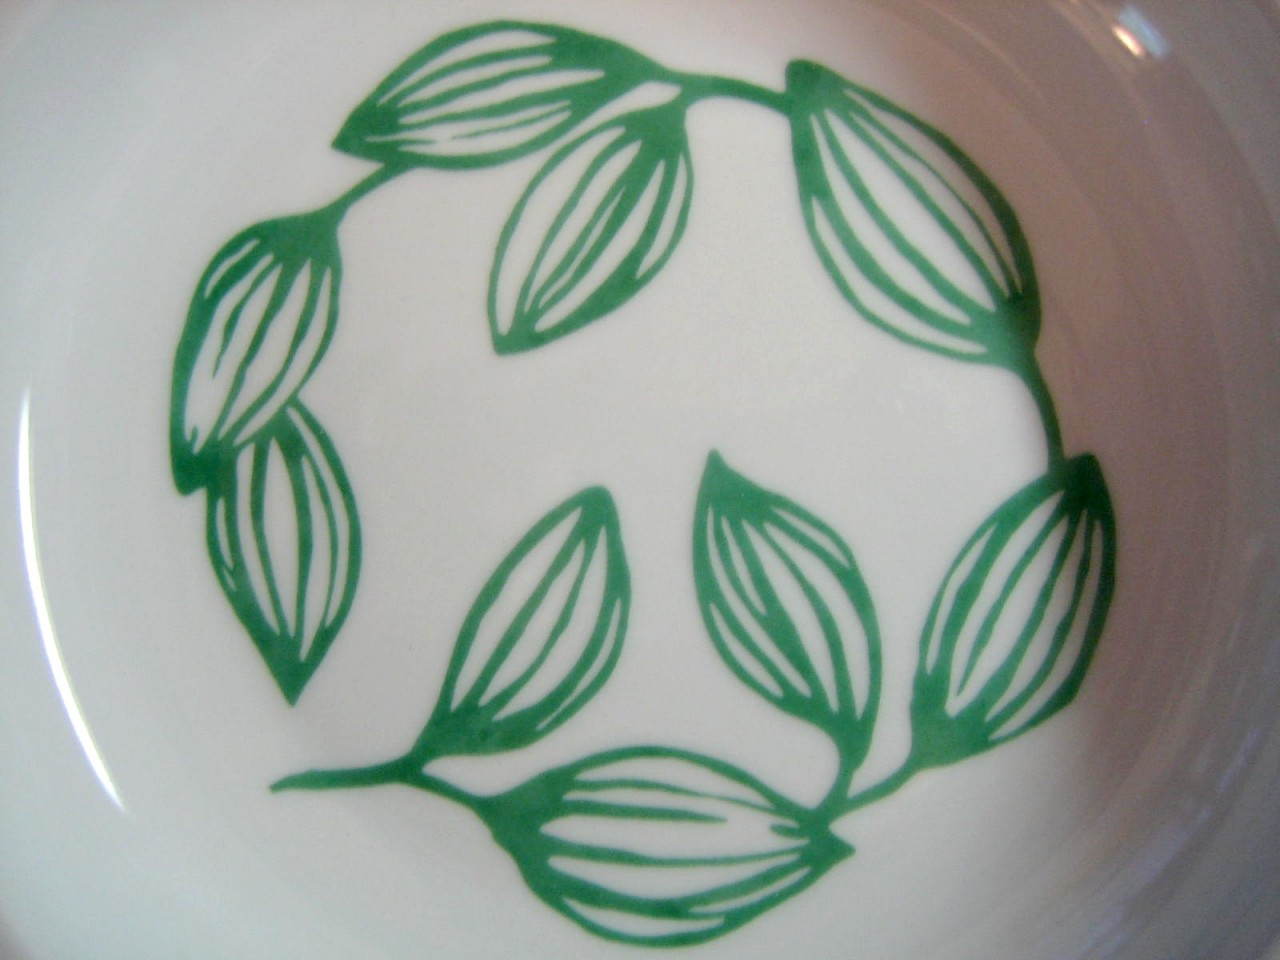 Decorative Flat Bowl Plate - White Shiny Glaze Emerald Green Leaf Tendrils 